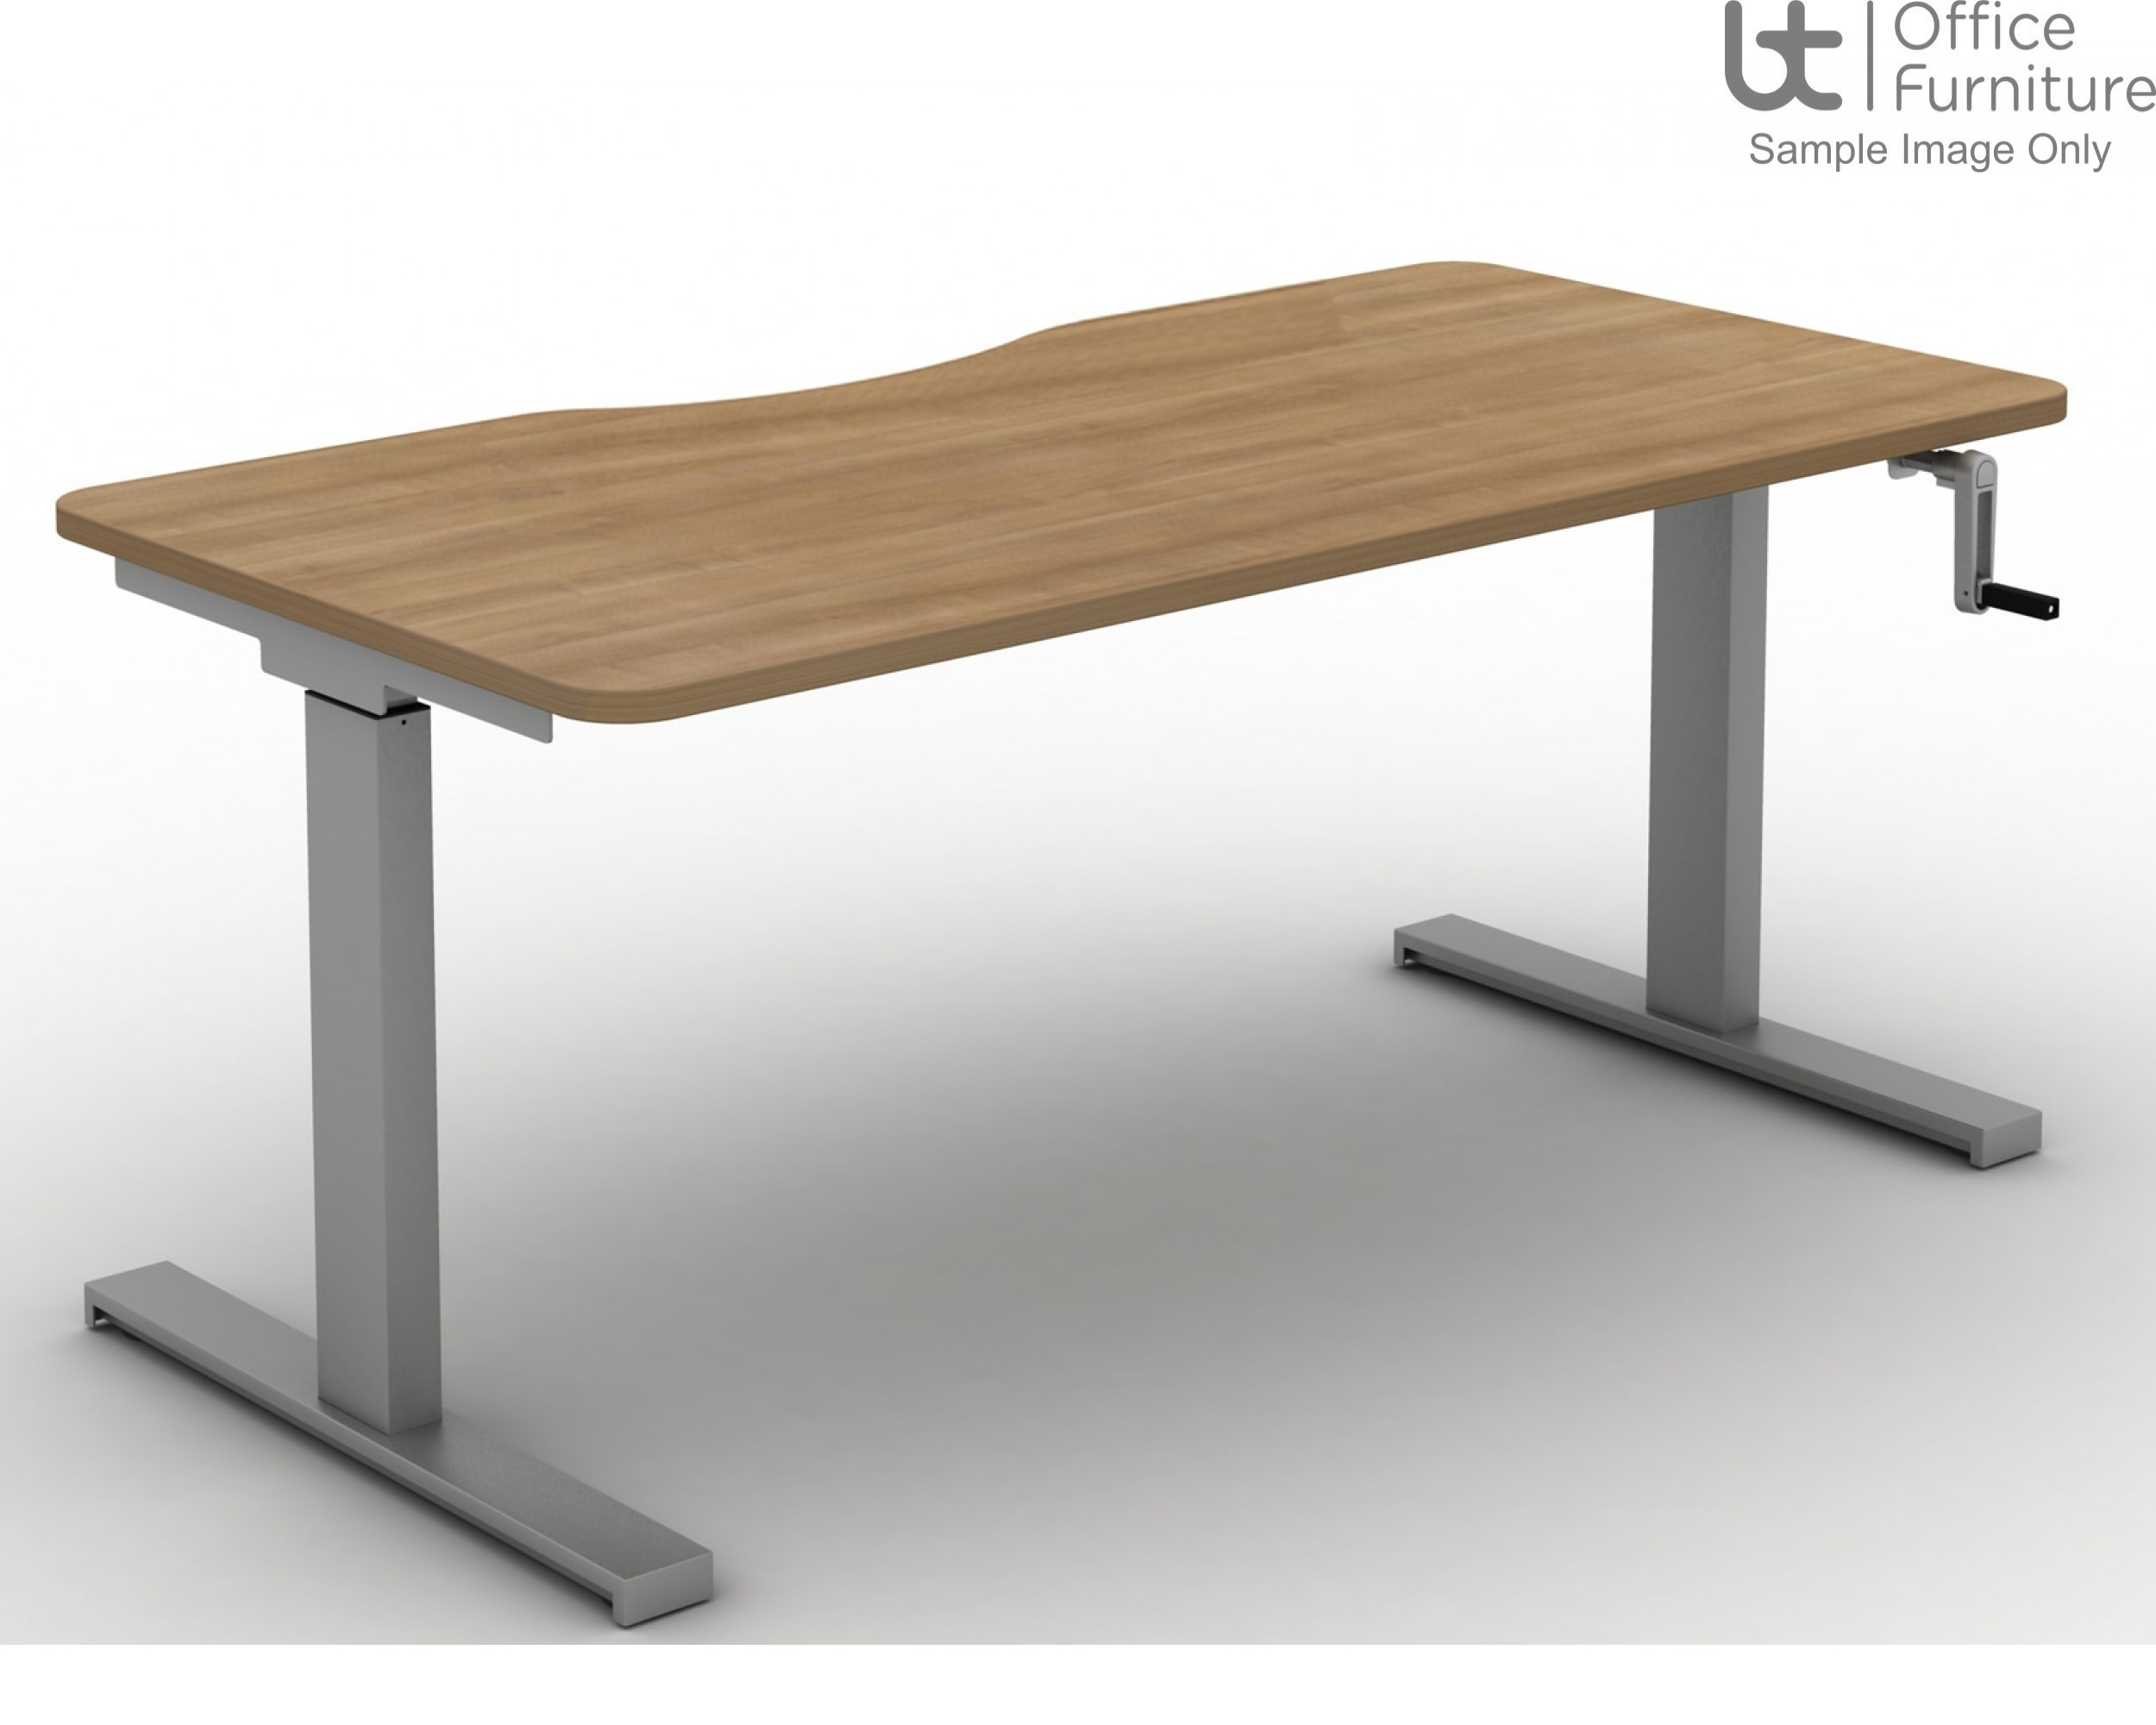 Move Crank Handle Rectangular Height Adjustable Sit-Stand Desk - Tops with Long Scallop & Rounded Corners